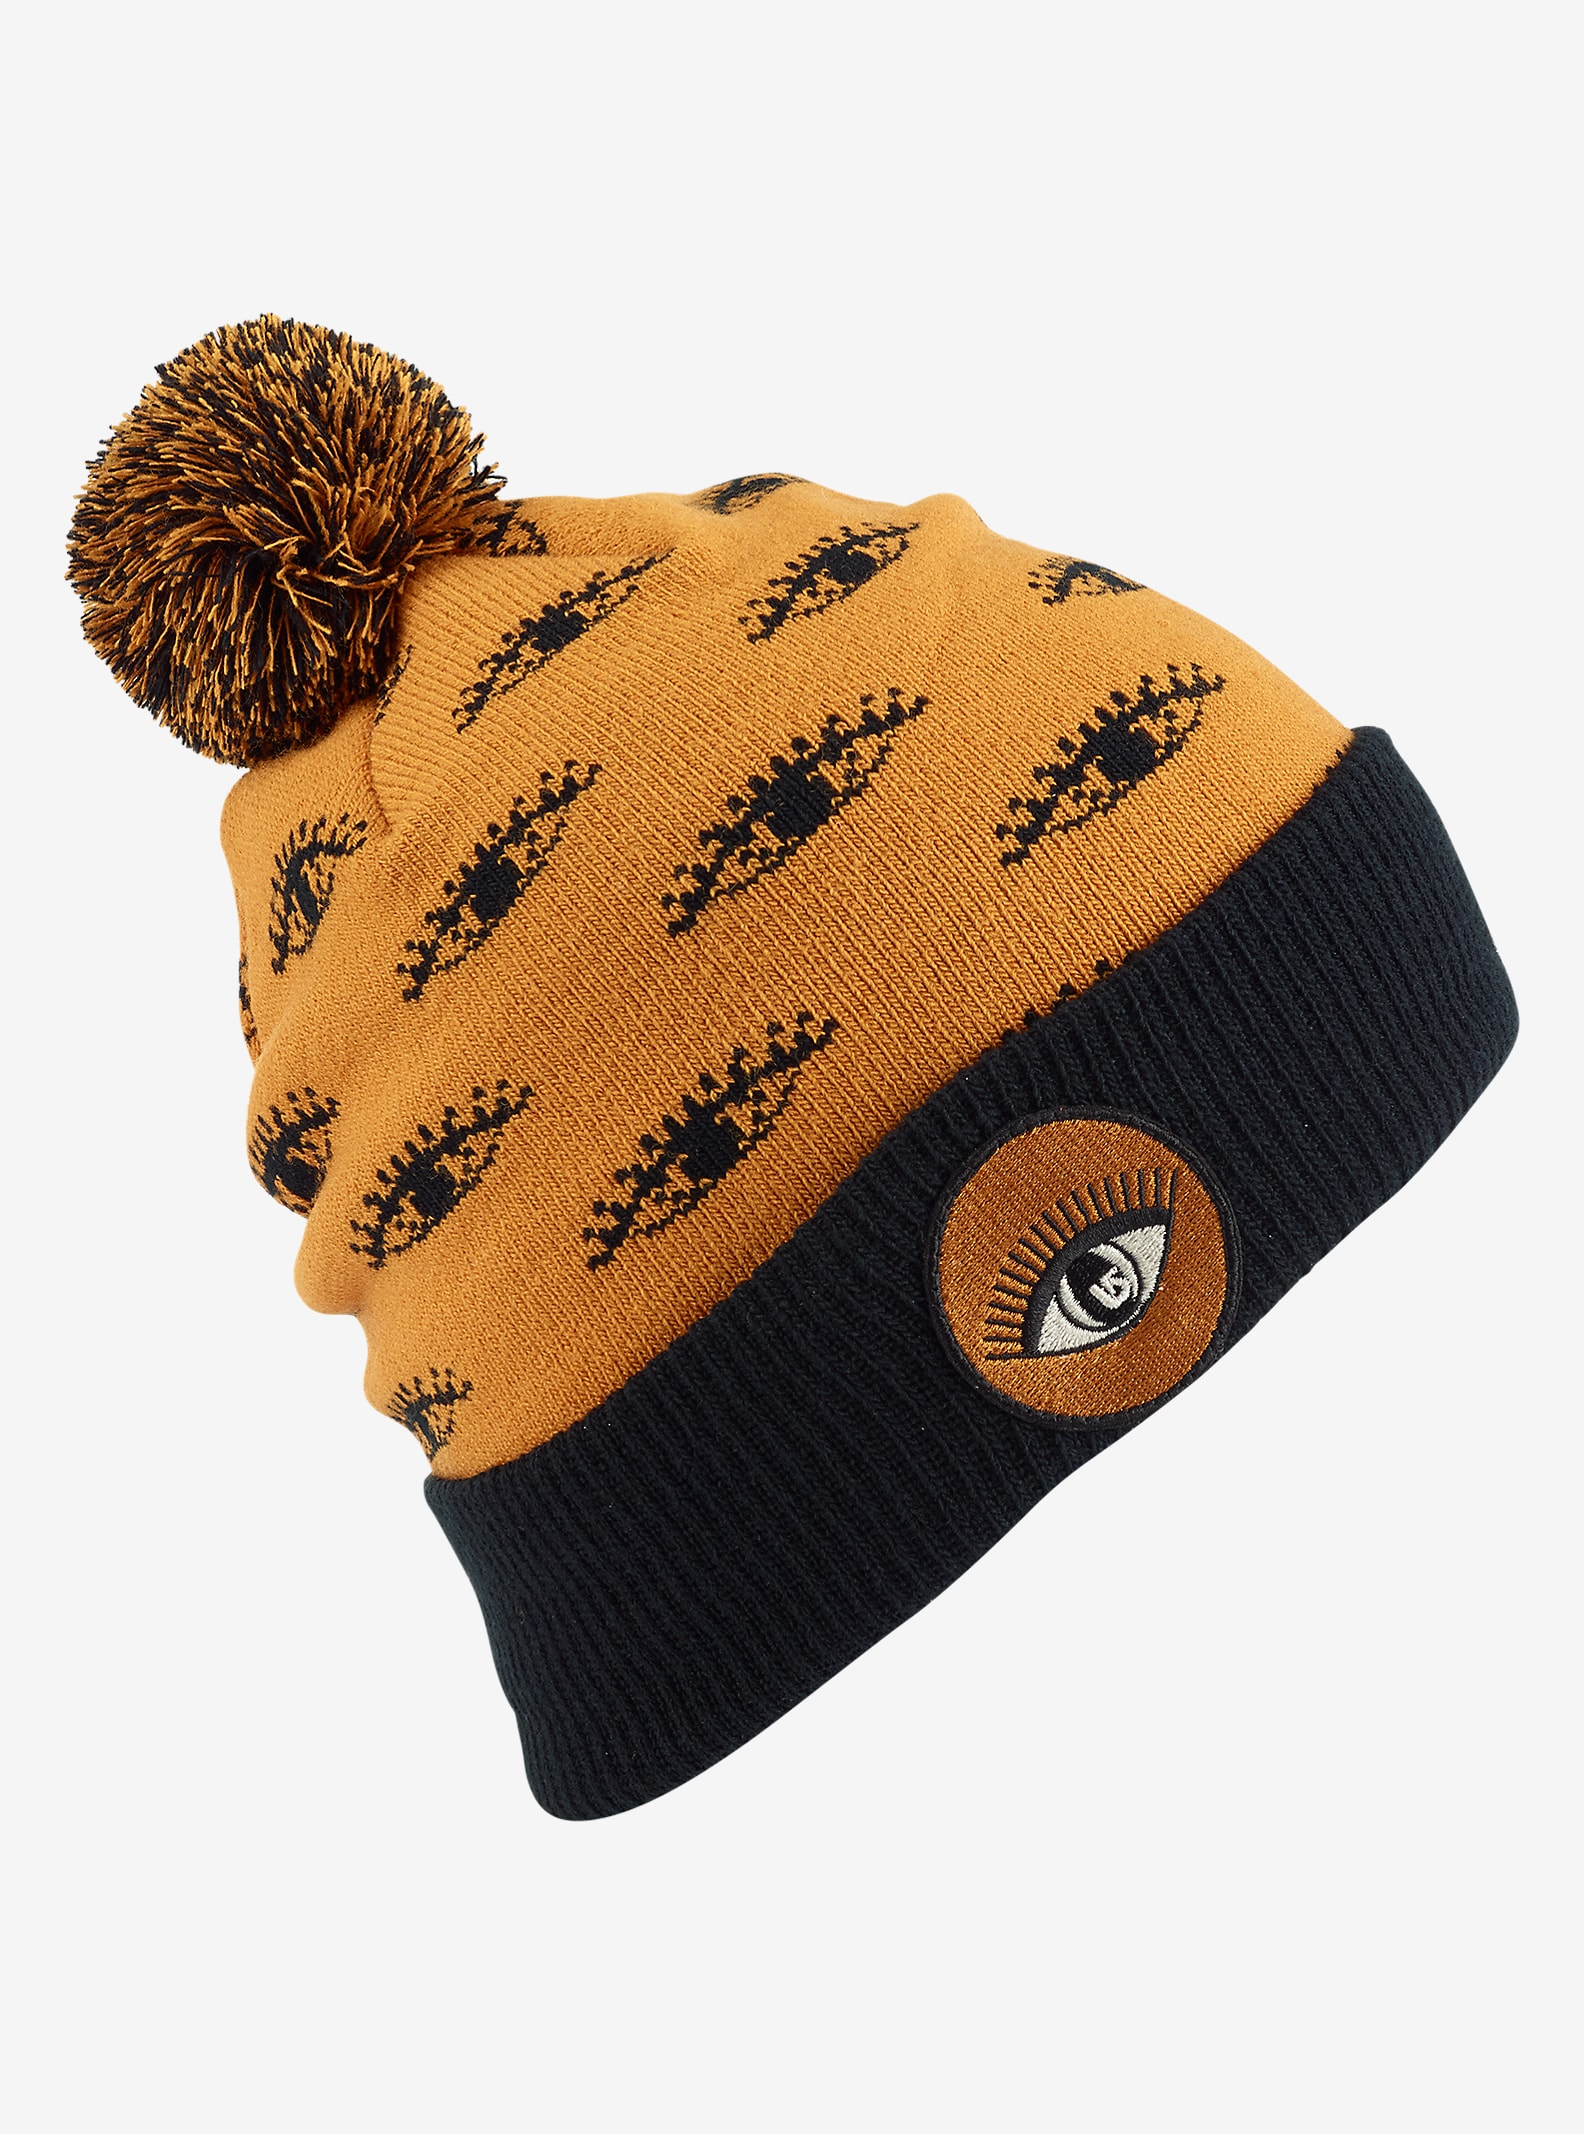 Burton Marcy Beanie shown in Eyes